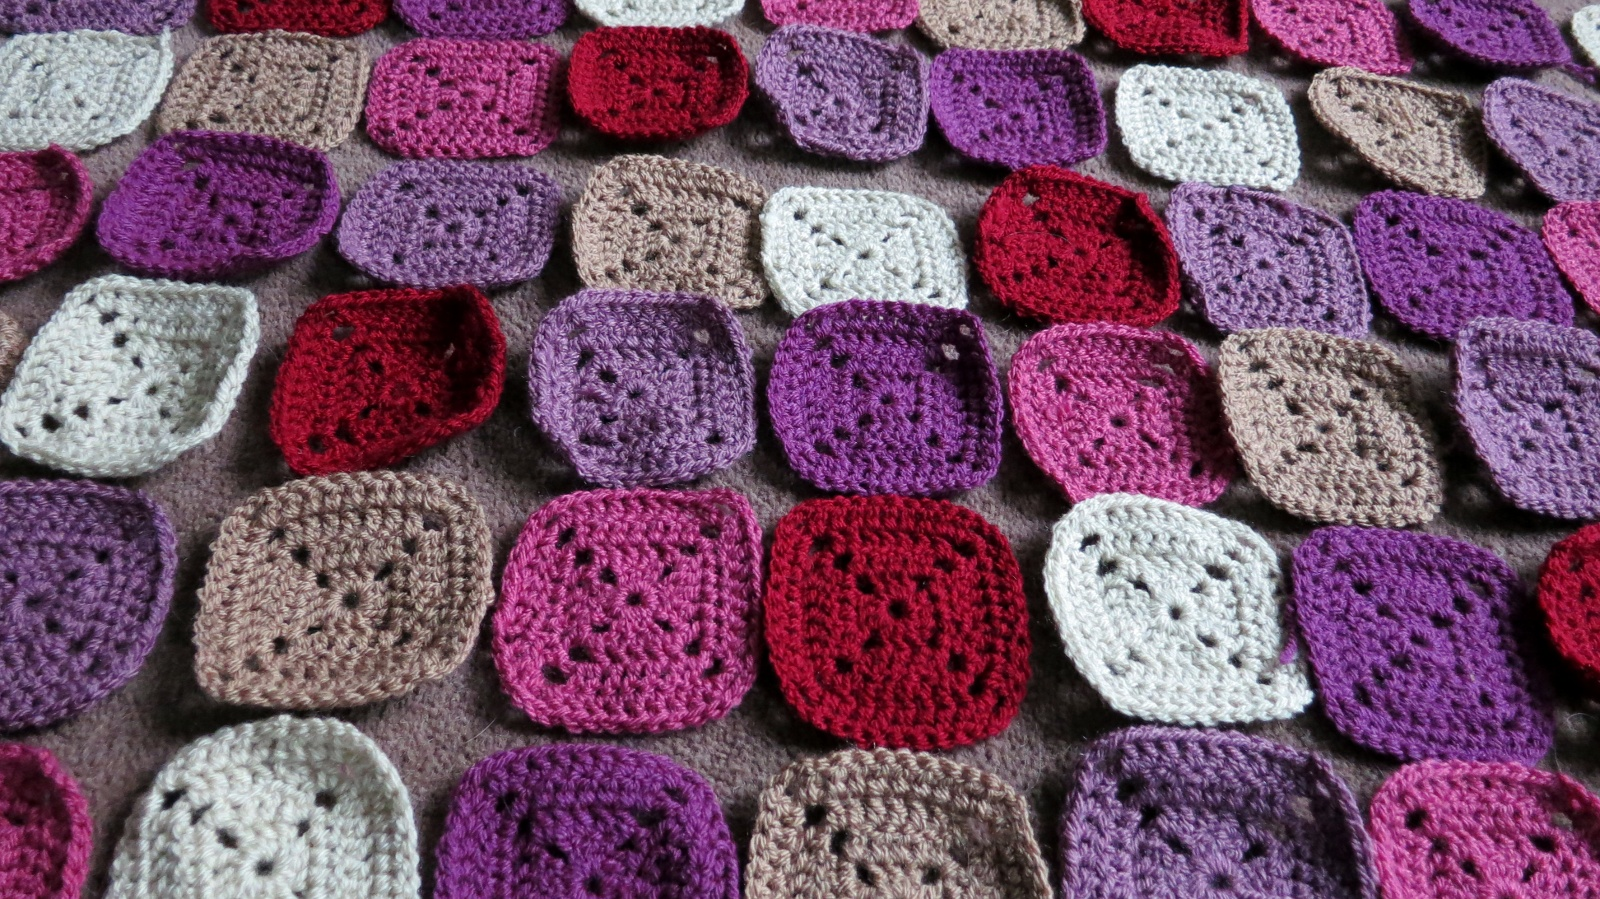 Crochet Patterns Joining Squares : ... square blanket: one colour per square like Heather?s Elmer blanket